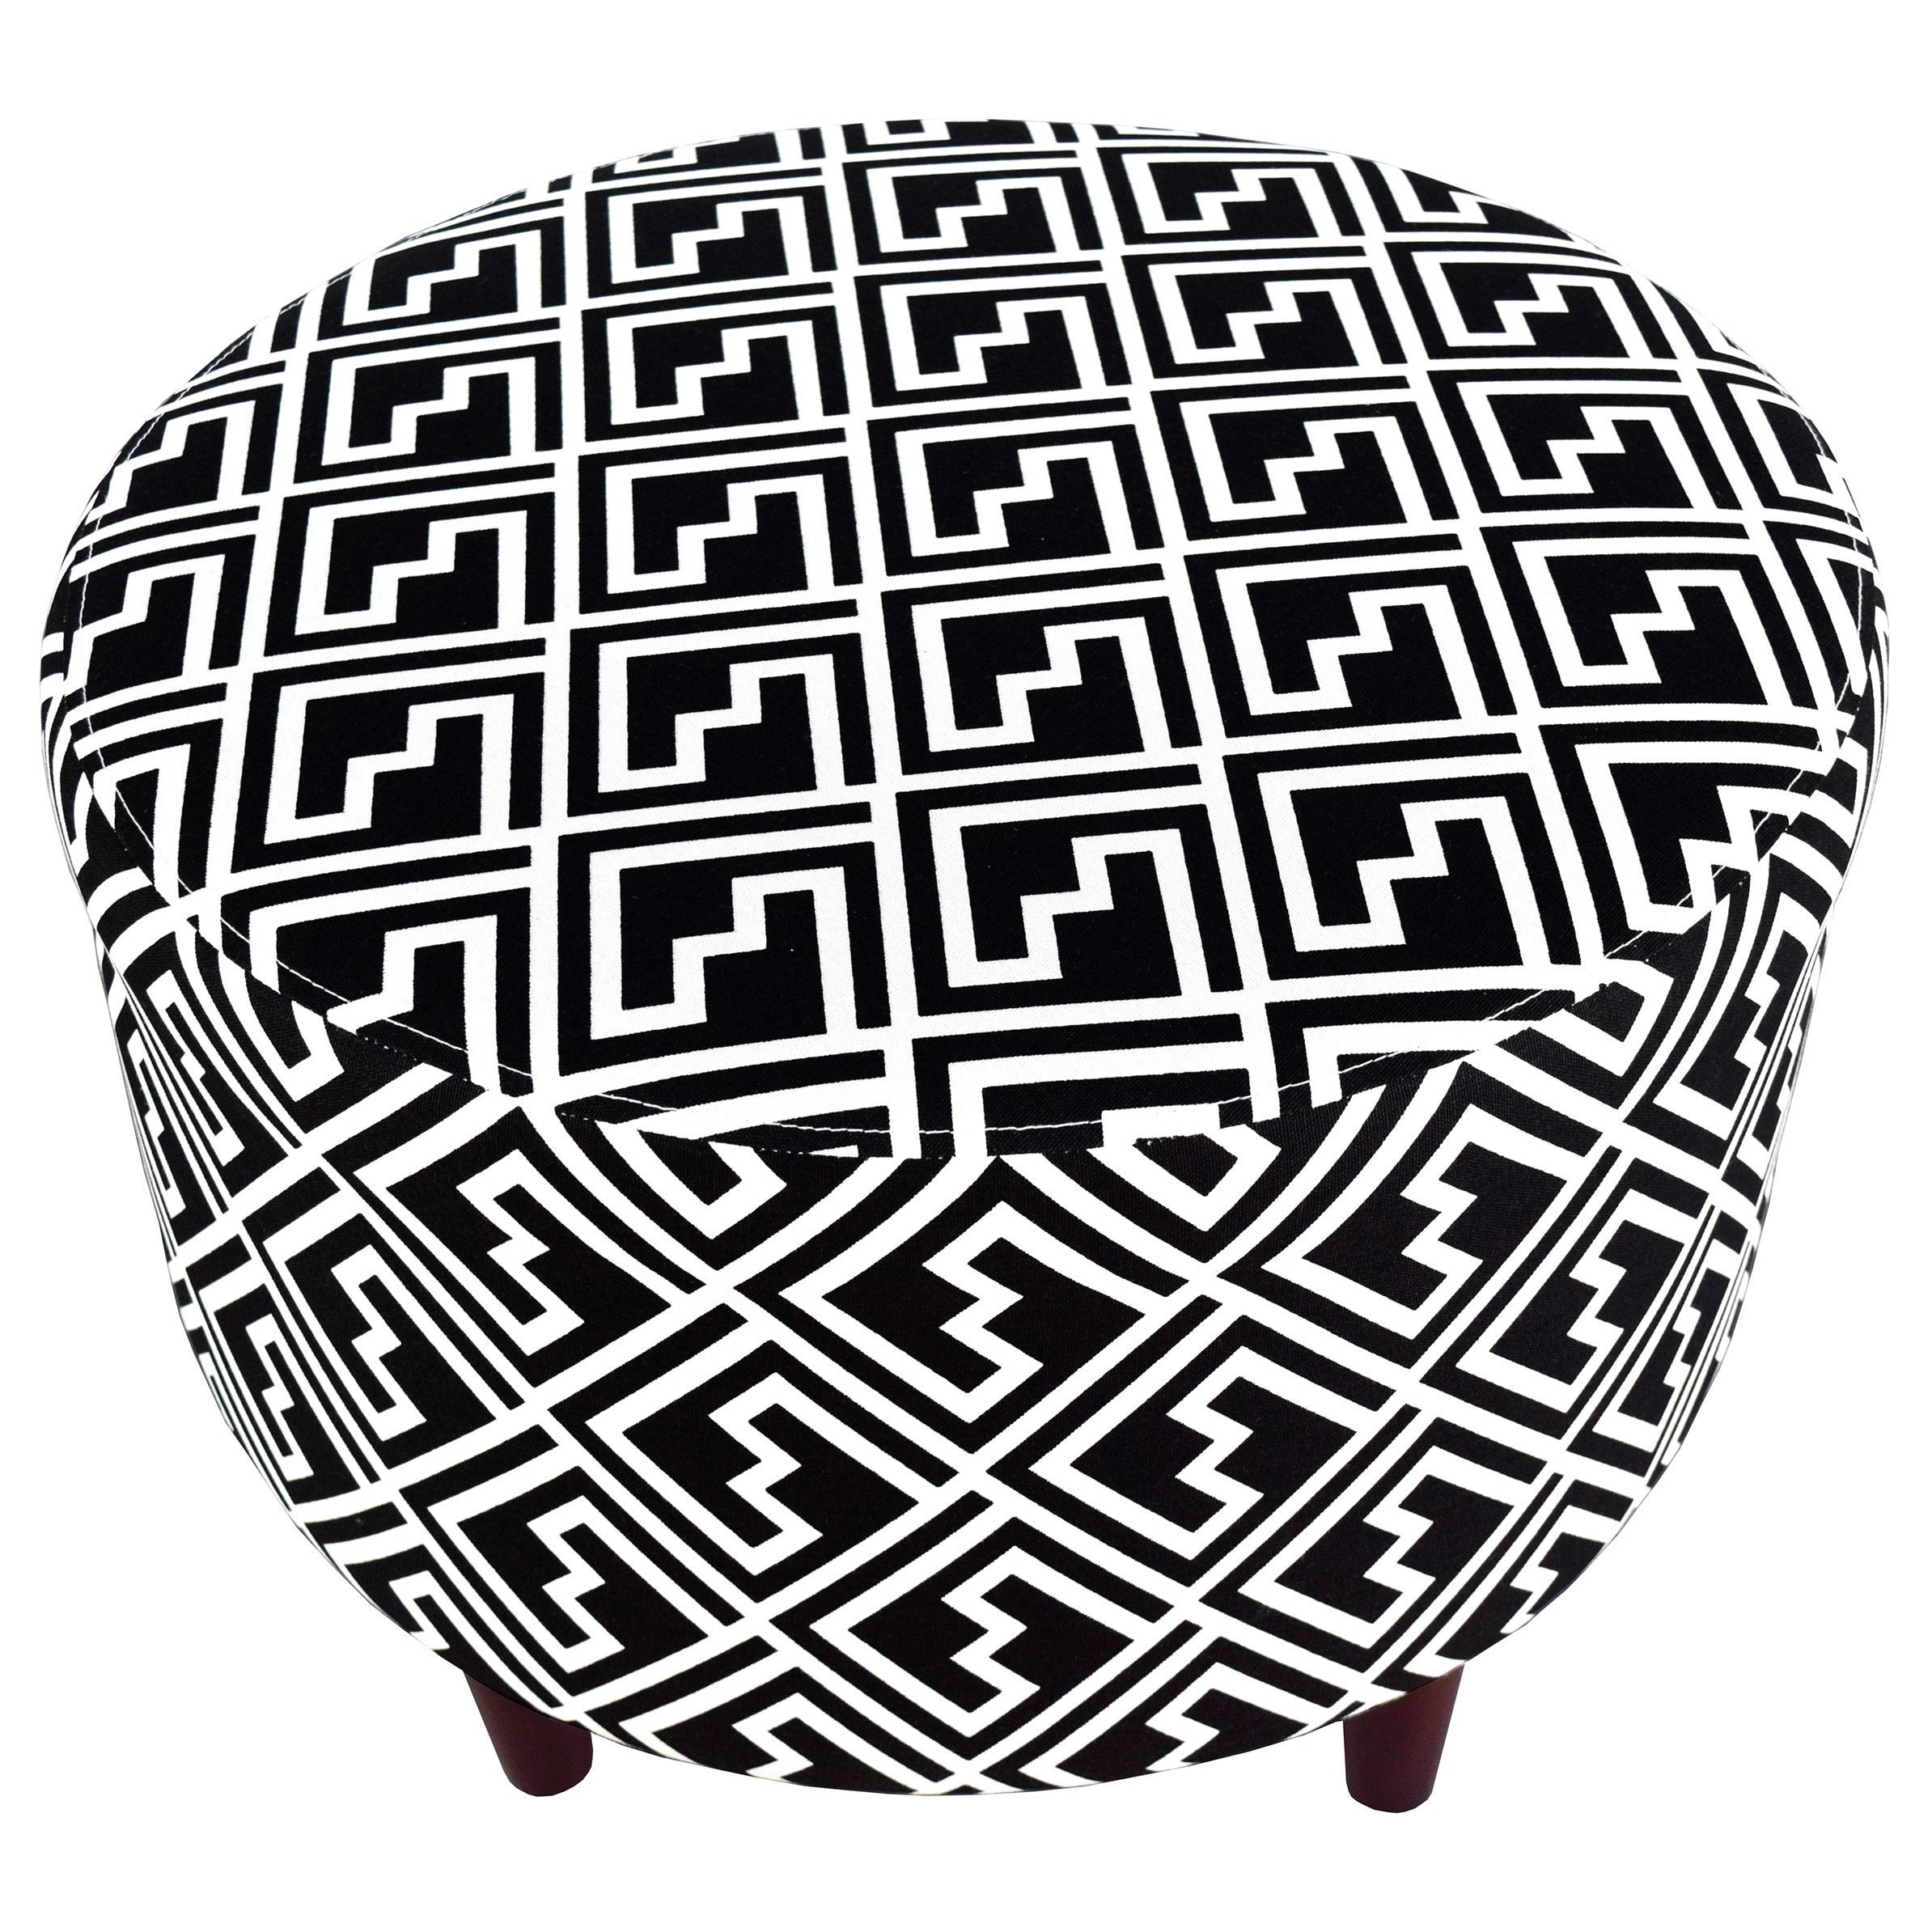 MJL Furniture Designs Sophia Collection Fabric Upholstered Round Footrest Ottoman with Round Espresso Finished Legs, Shakes Series, Black